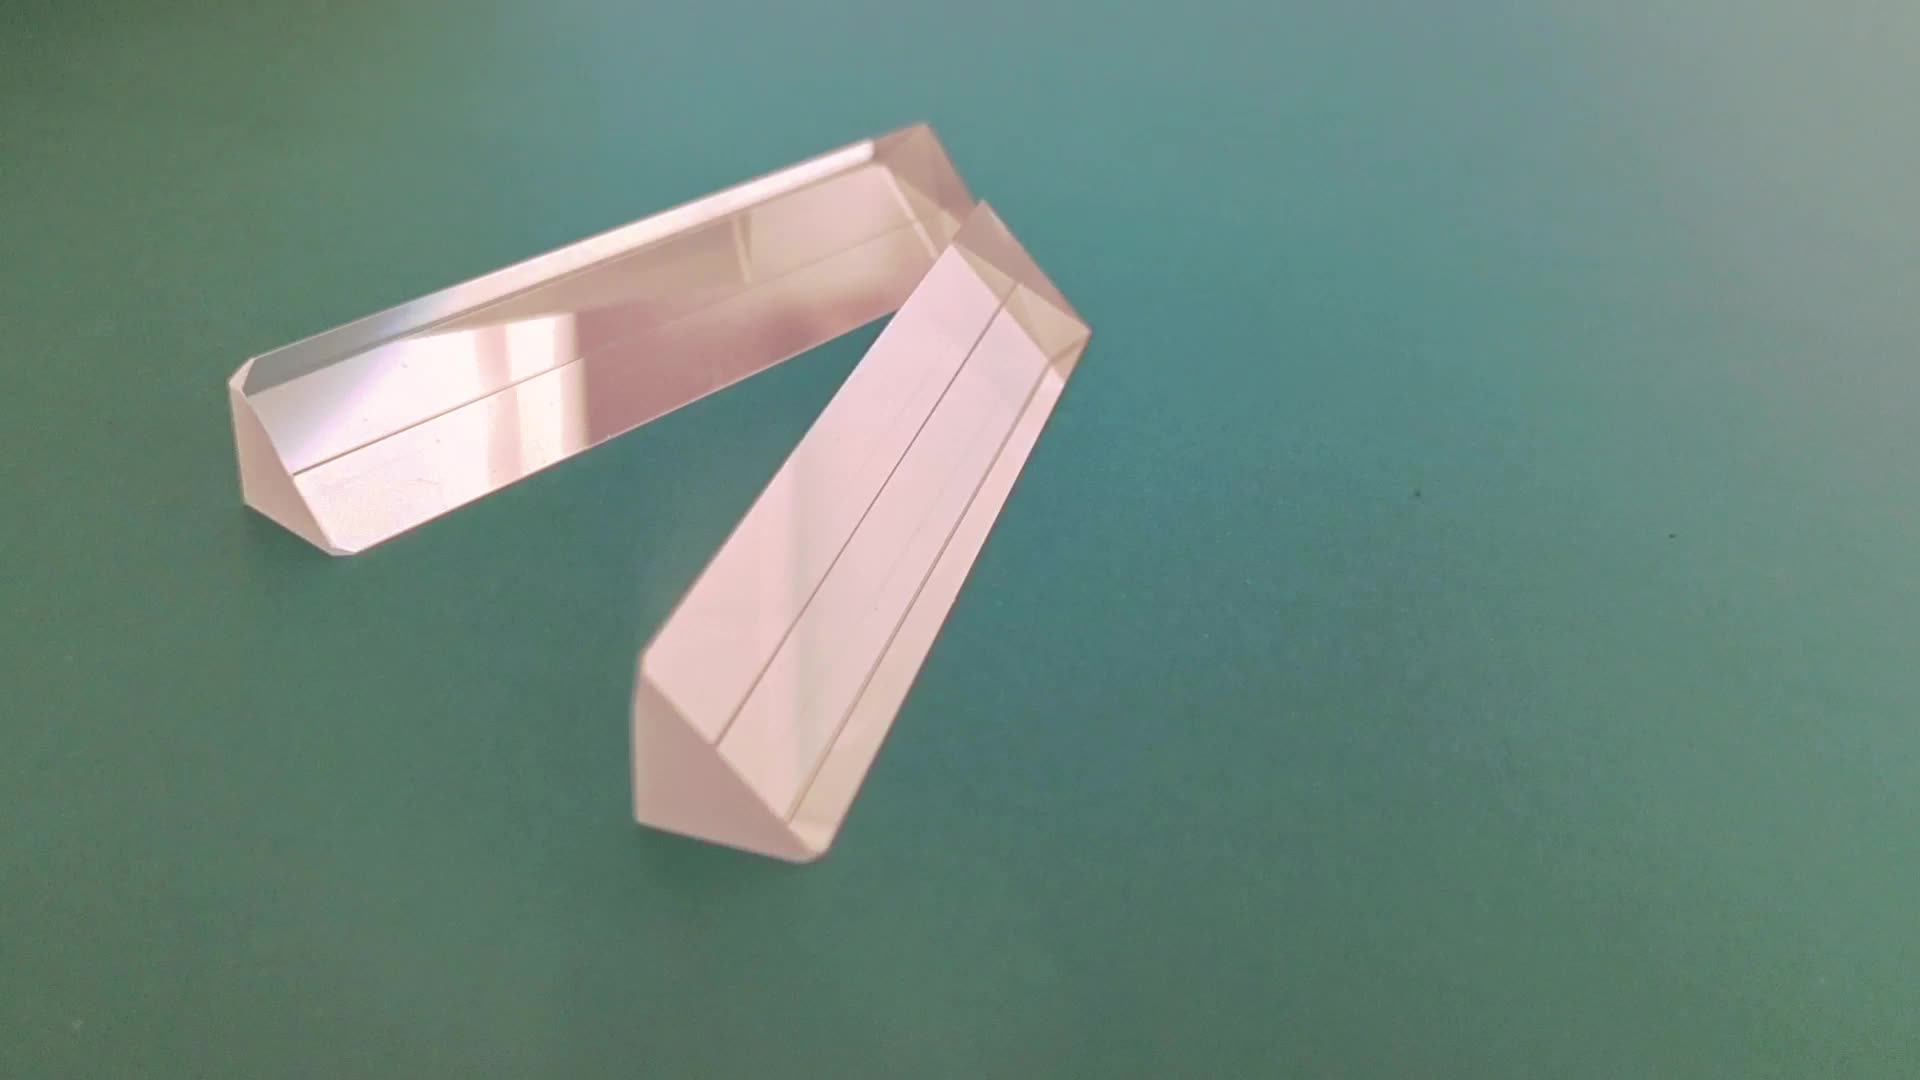 customized BK7/fused silica/CaF2 equilateral triangular Right angle prism